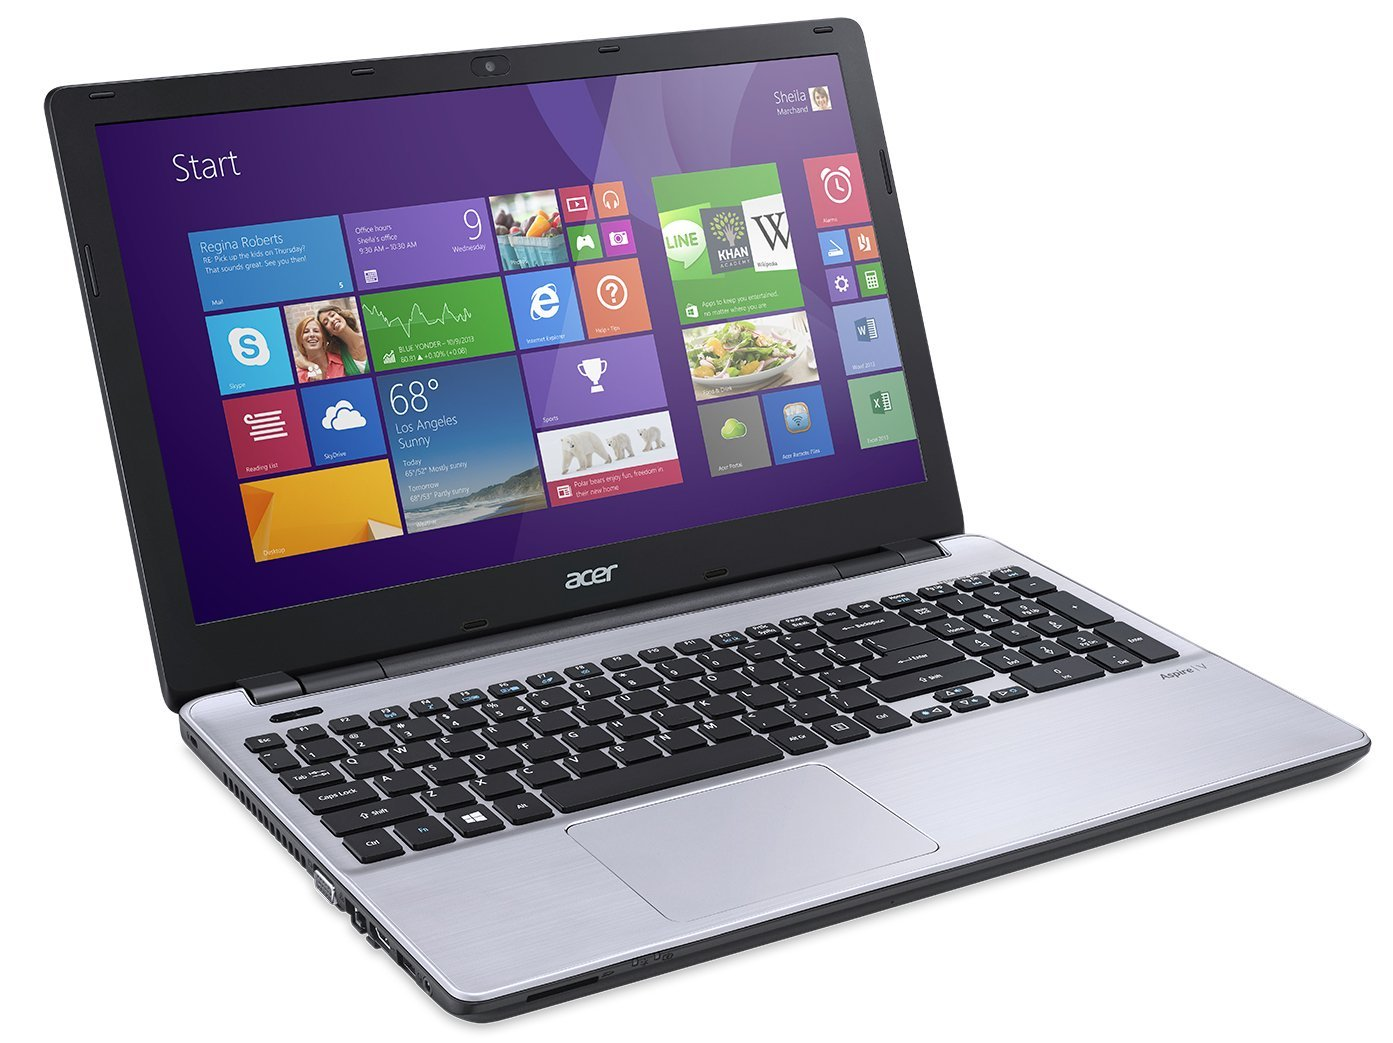 Acer Aspire V 15 V3-572G-51DR 15.6-Inch HD Laptop